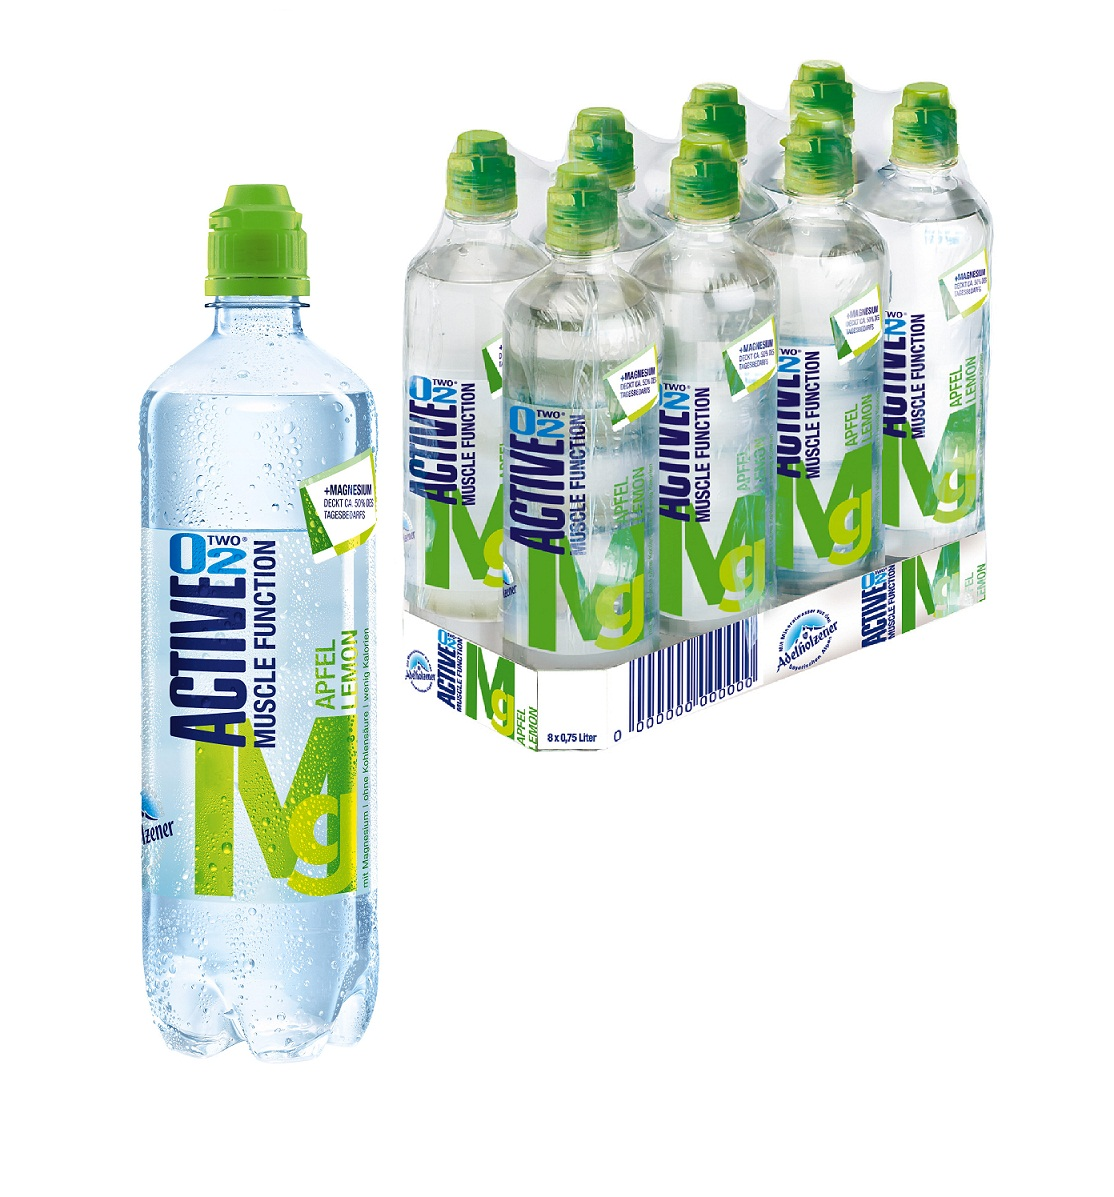 Active O2 Apfel Lemon Mg 8 x 0,75 Liter (Sportcap)